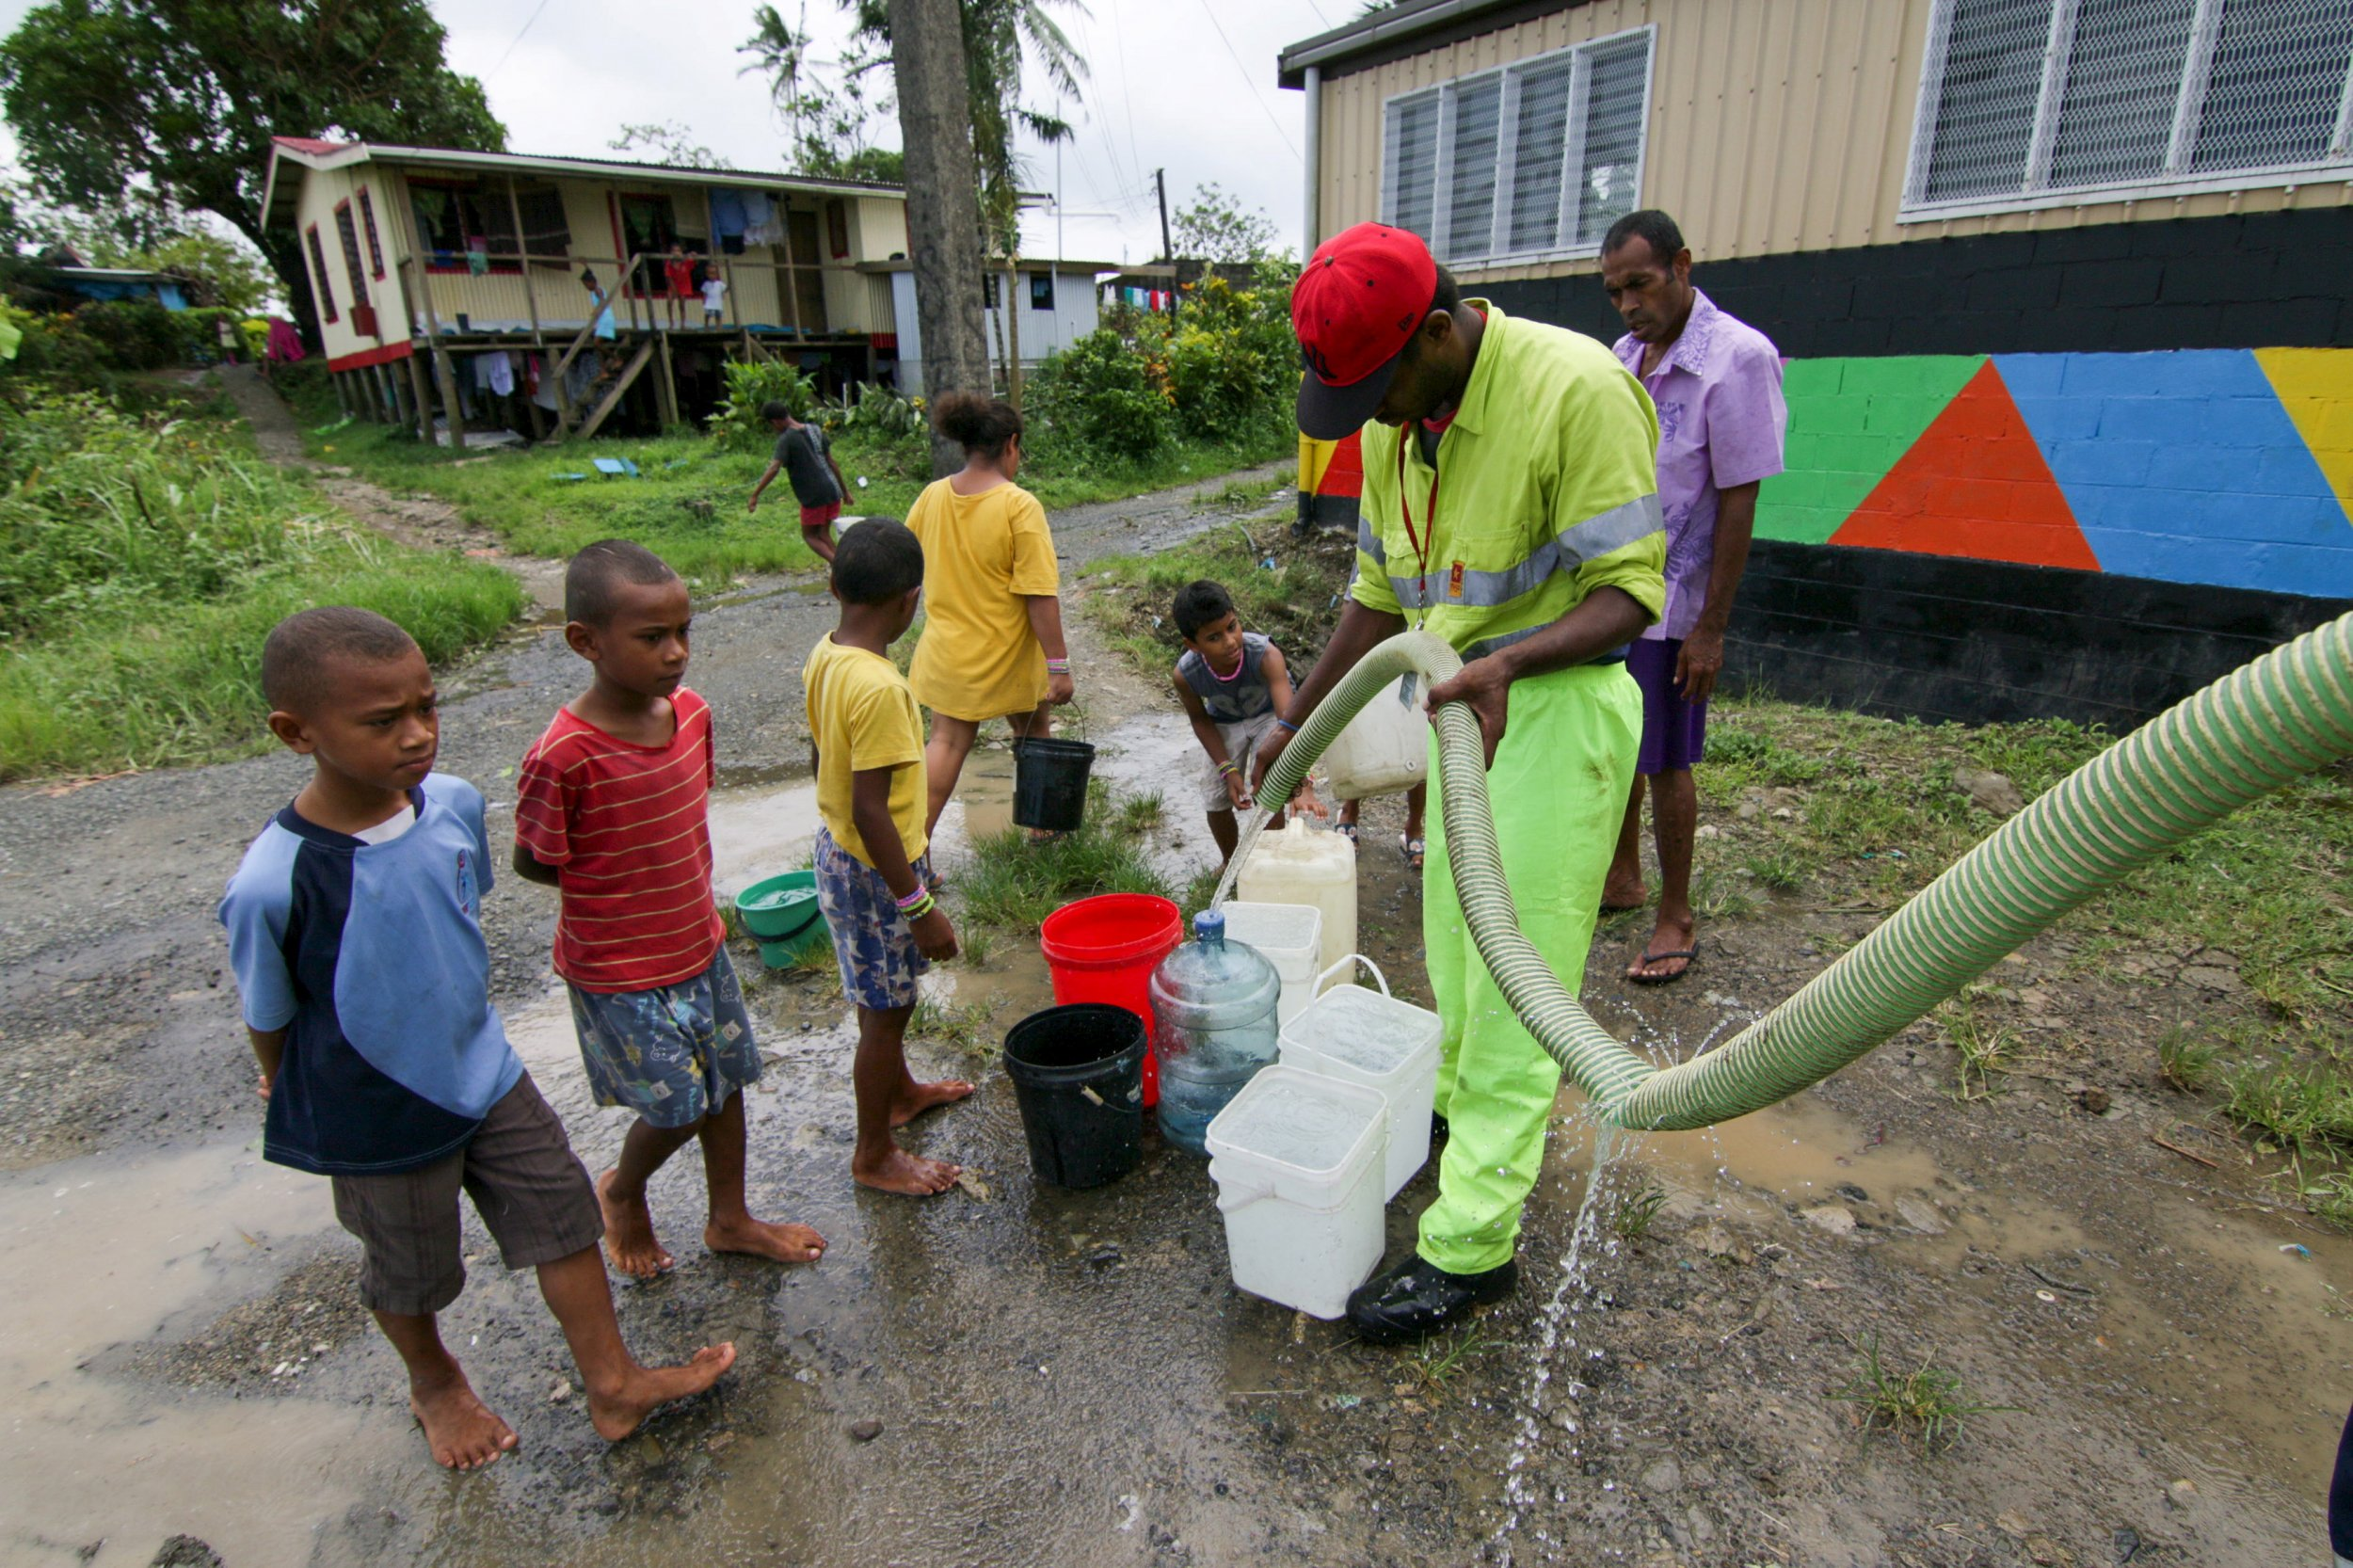 Worker-fills-buckets-fresh-water-cyclone-Fiji.